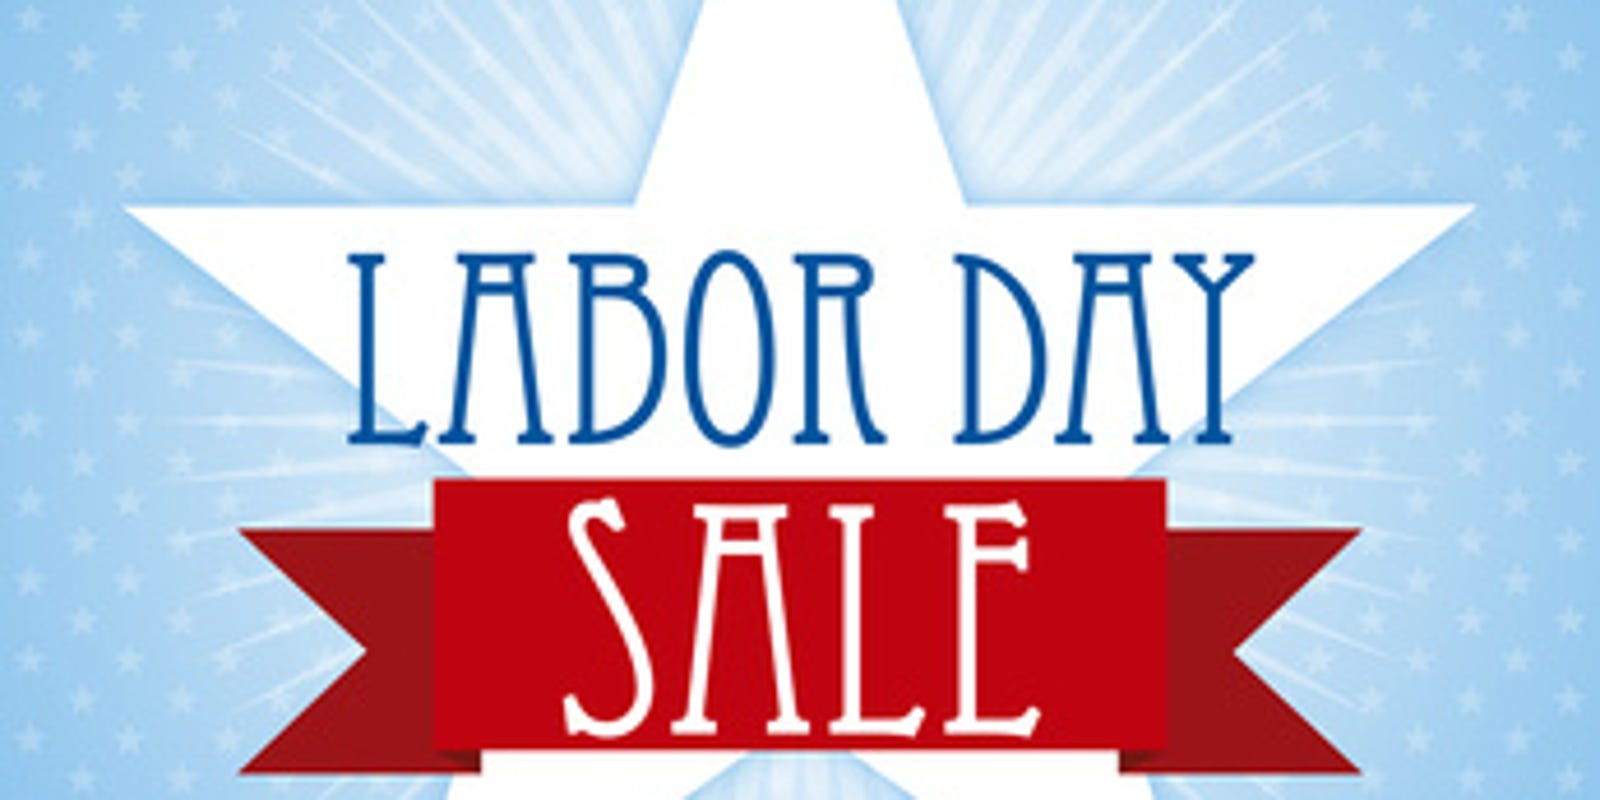 eBay Labor Day Sale Store: eBay Discount: Extra 20% off EXPIRED $25 via code